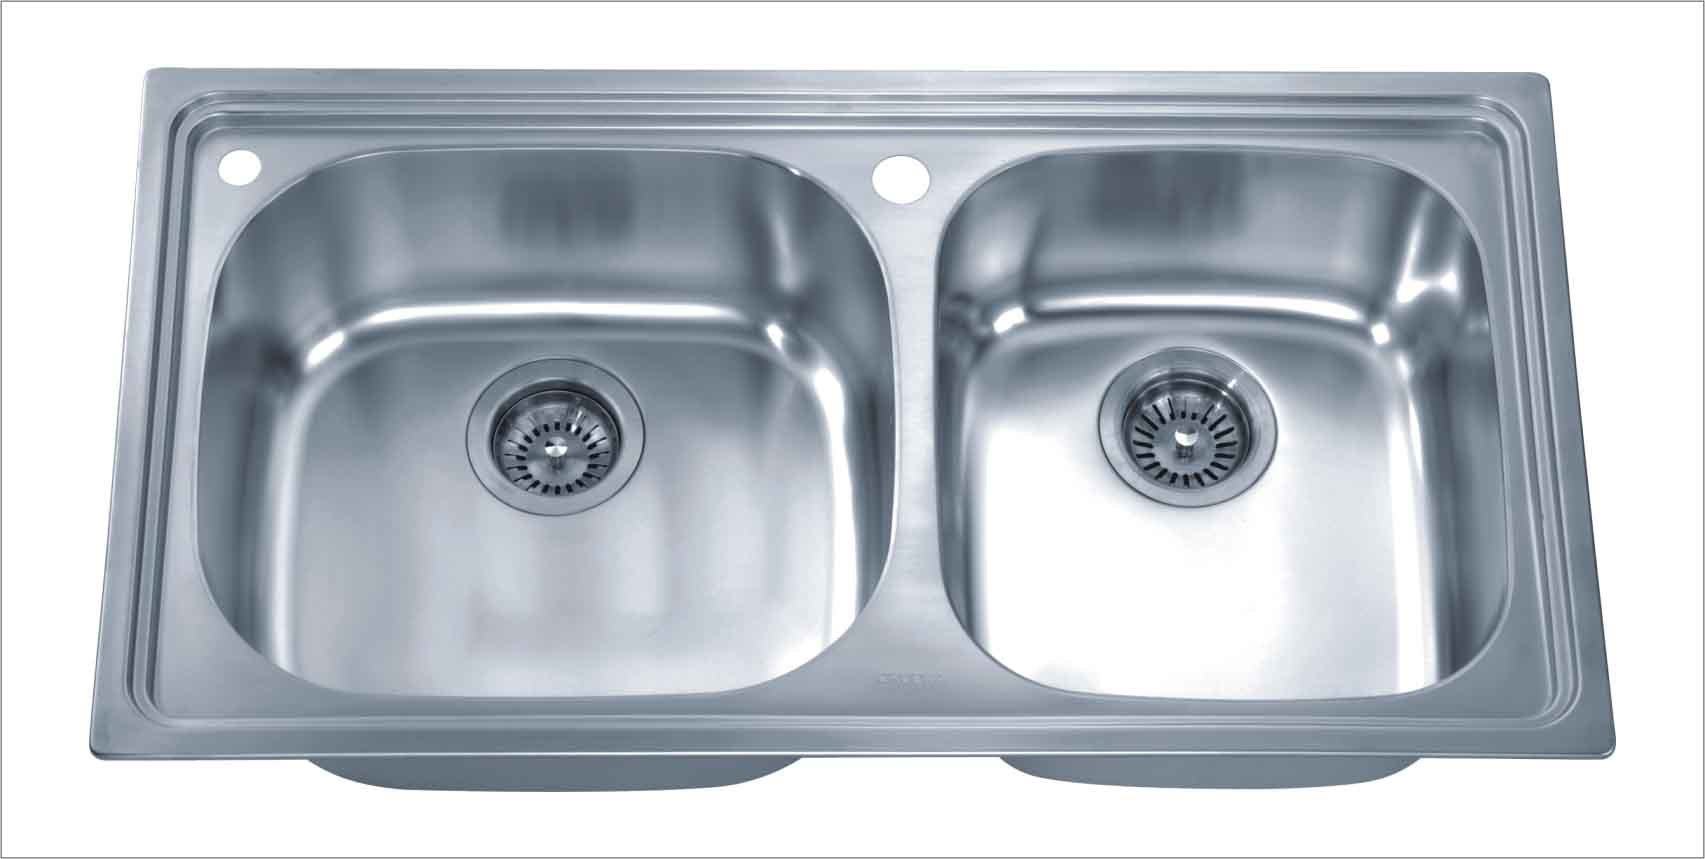 Image Name: Granite Sinks Vs Stainless Steel